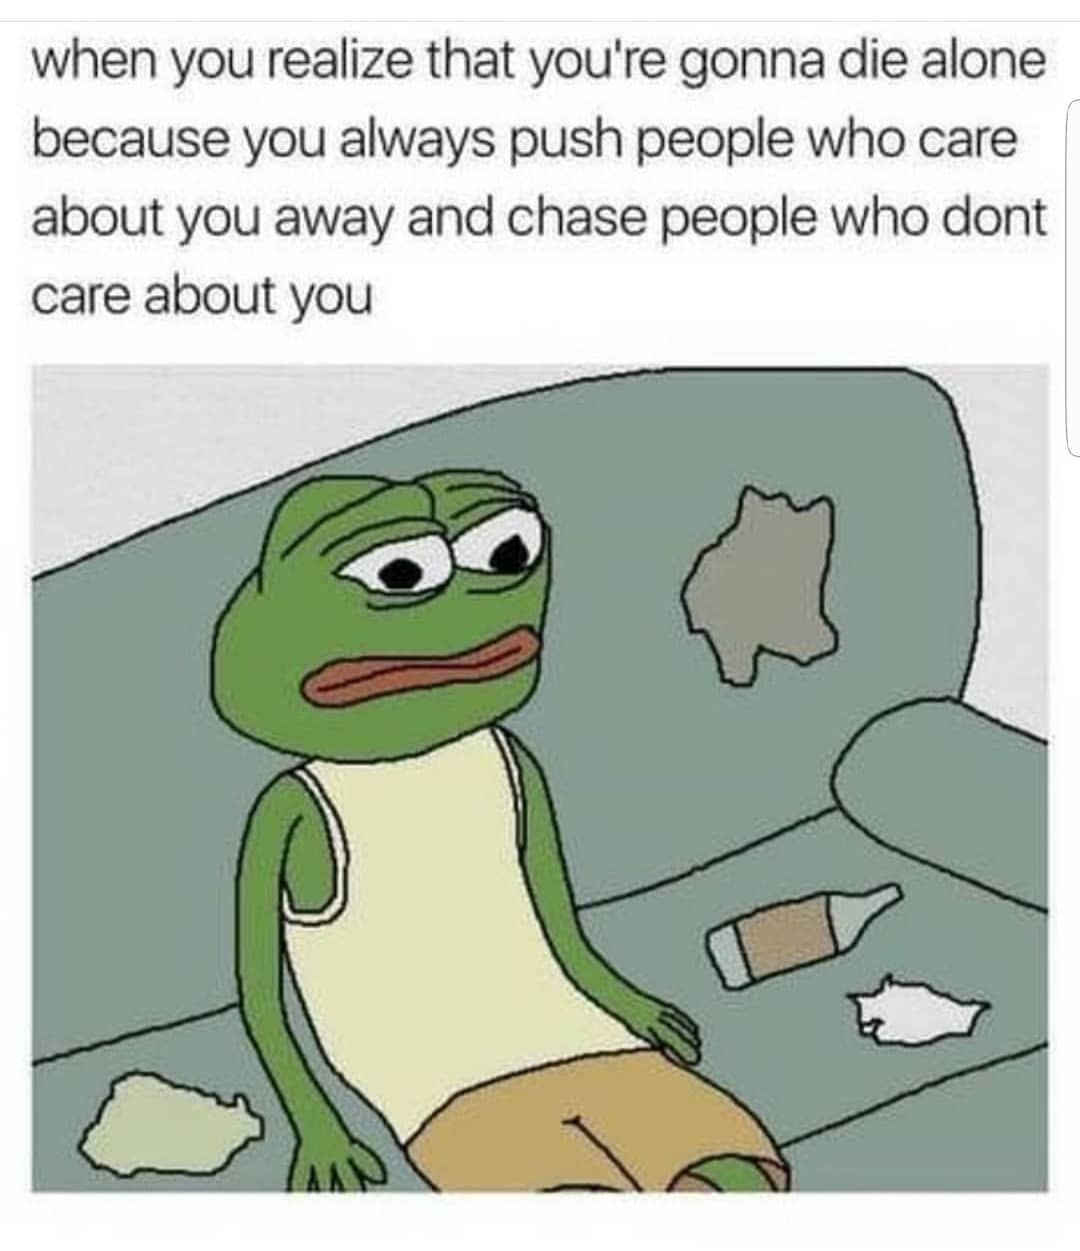 Lonelysadmeme On Instagram Can T Relate Nobody Care Sadmemes Depressionmemes Anxietymemes Relatablememes Nobody Cares Quotes Memes Sweet Love Text